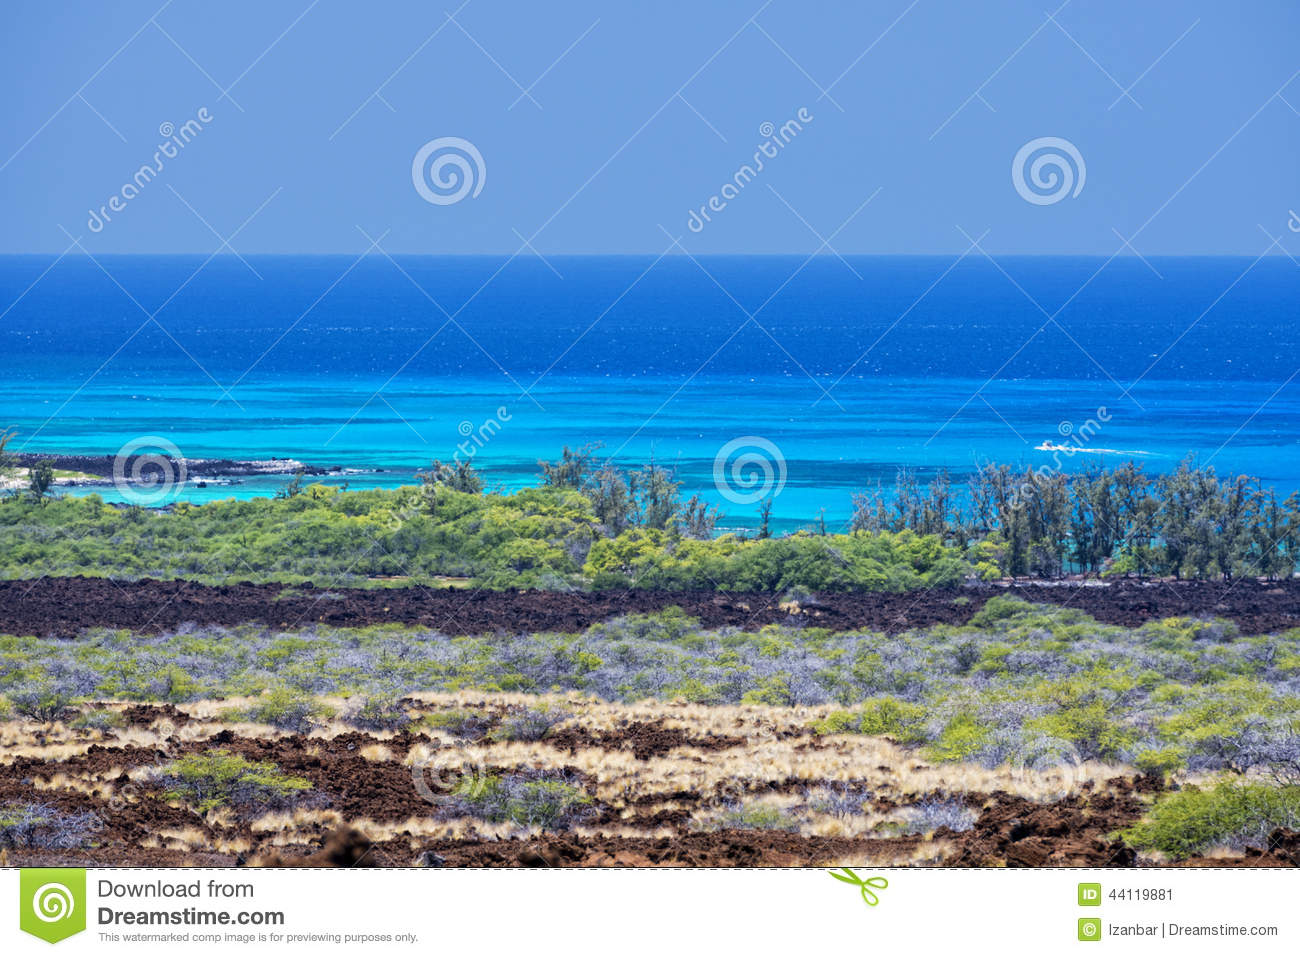 Big Island Hawaii Lava And Sea Stock Photo - Image: 44119881